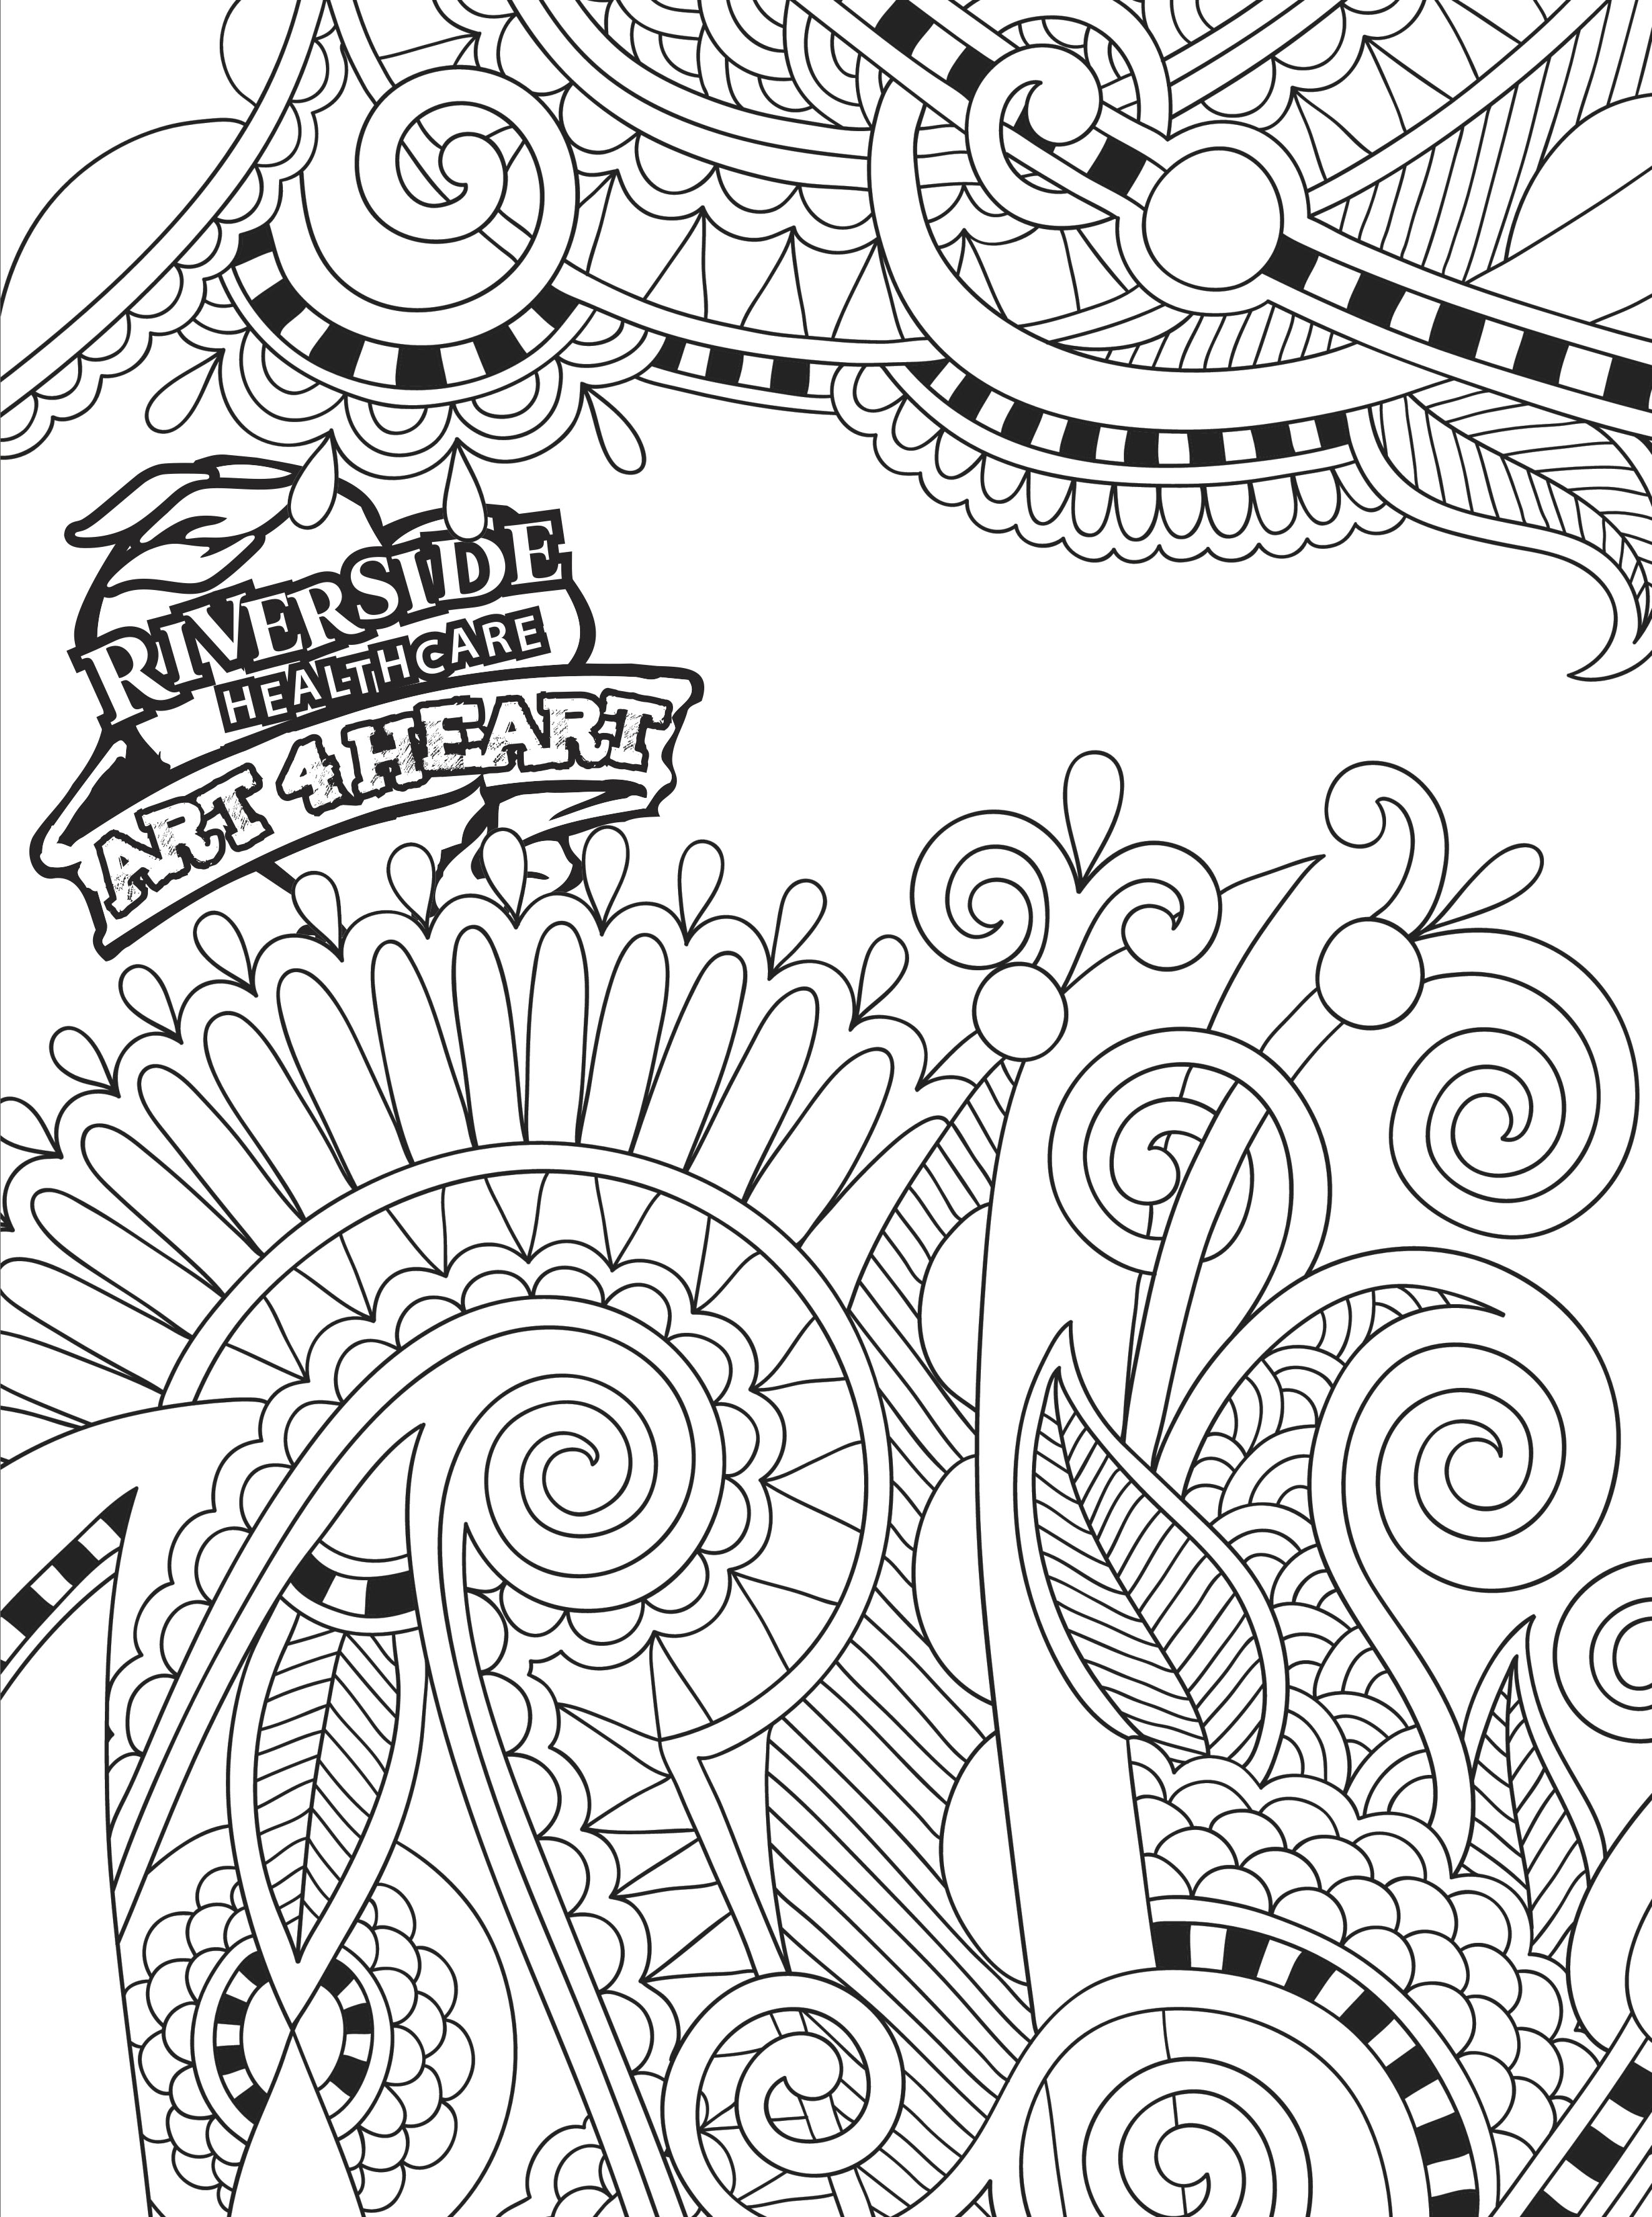 Printable Coloring Pages - HealthCurrents